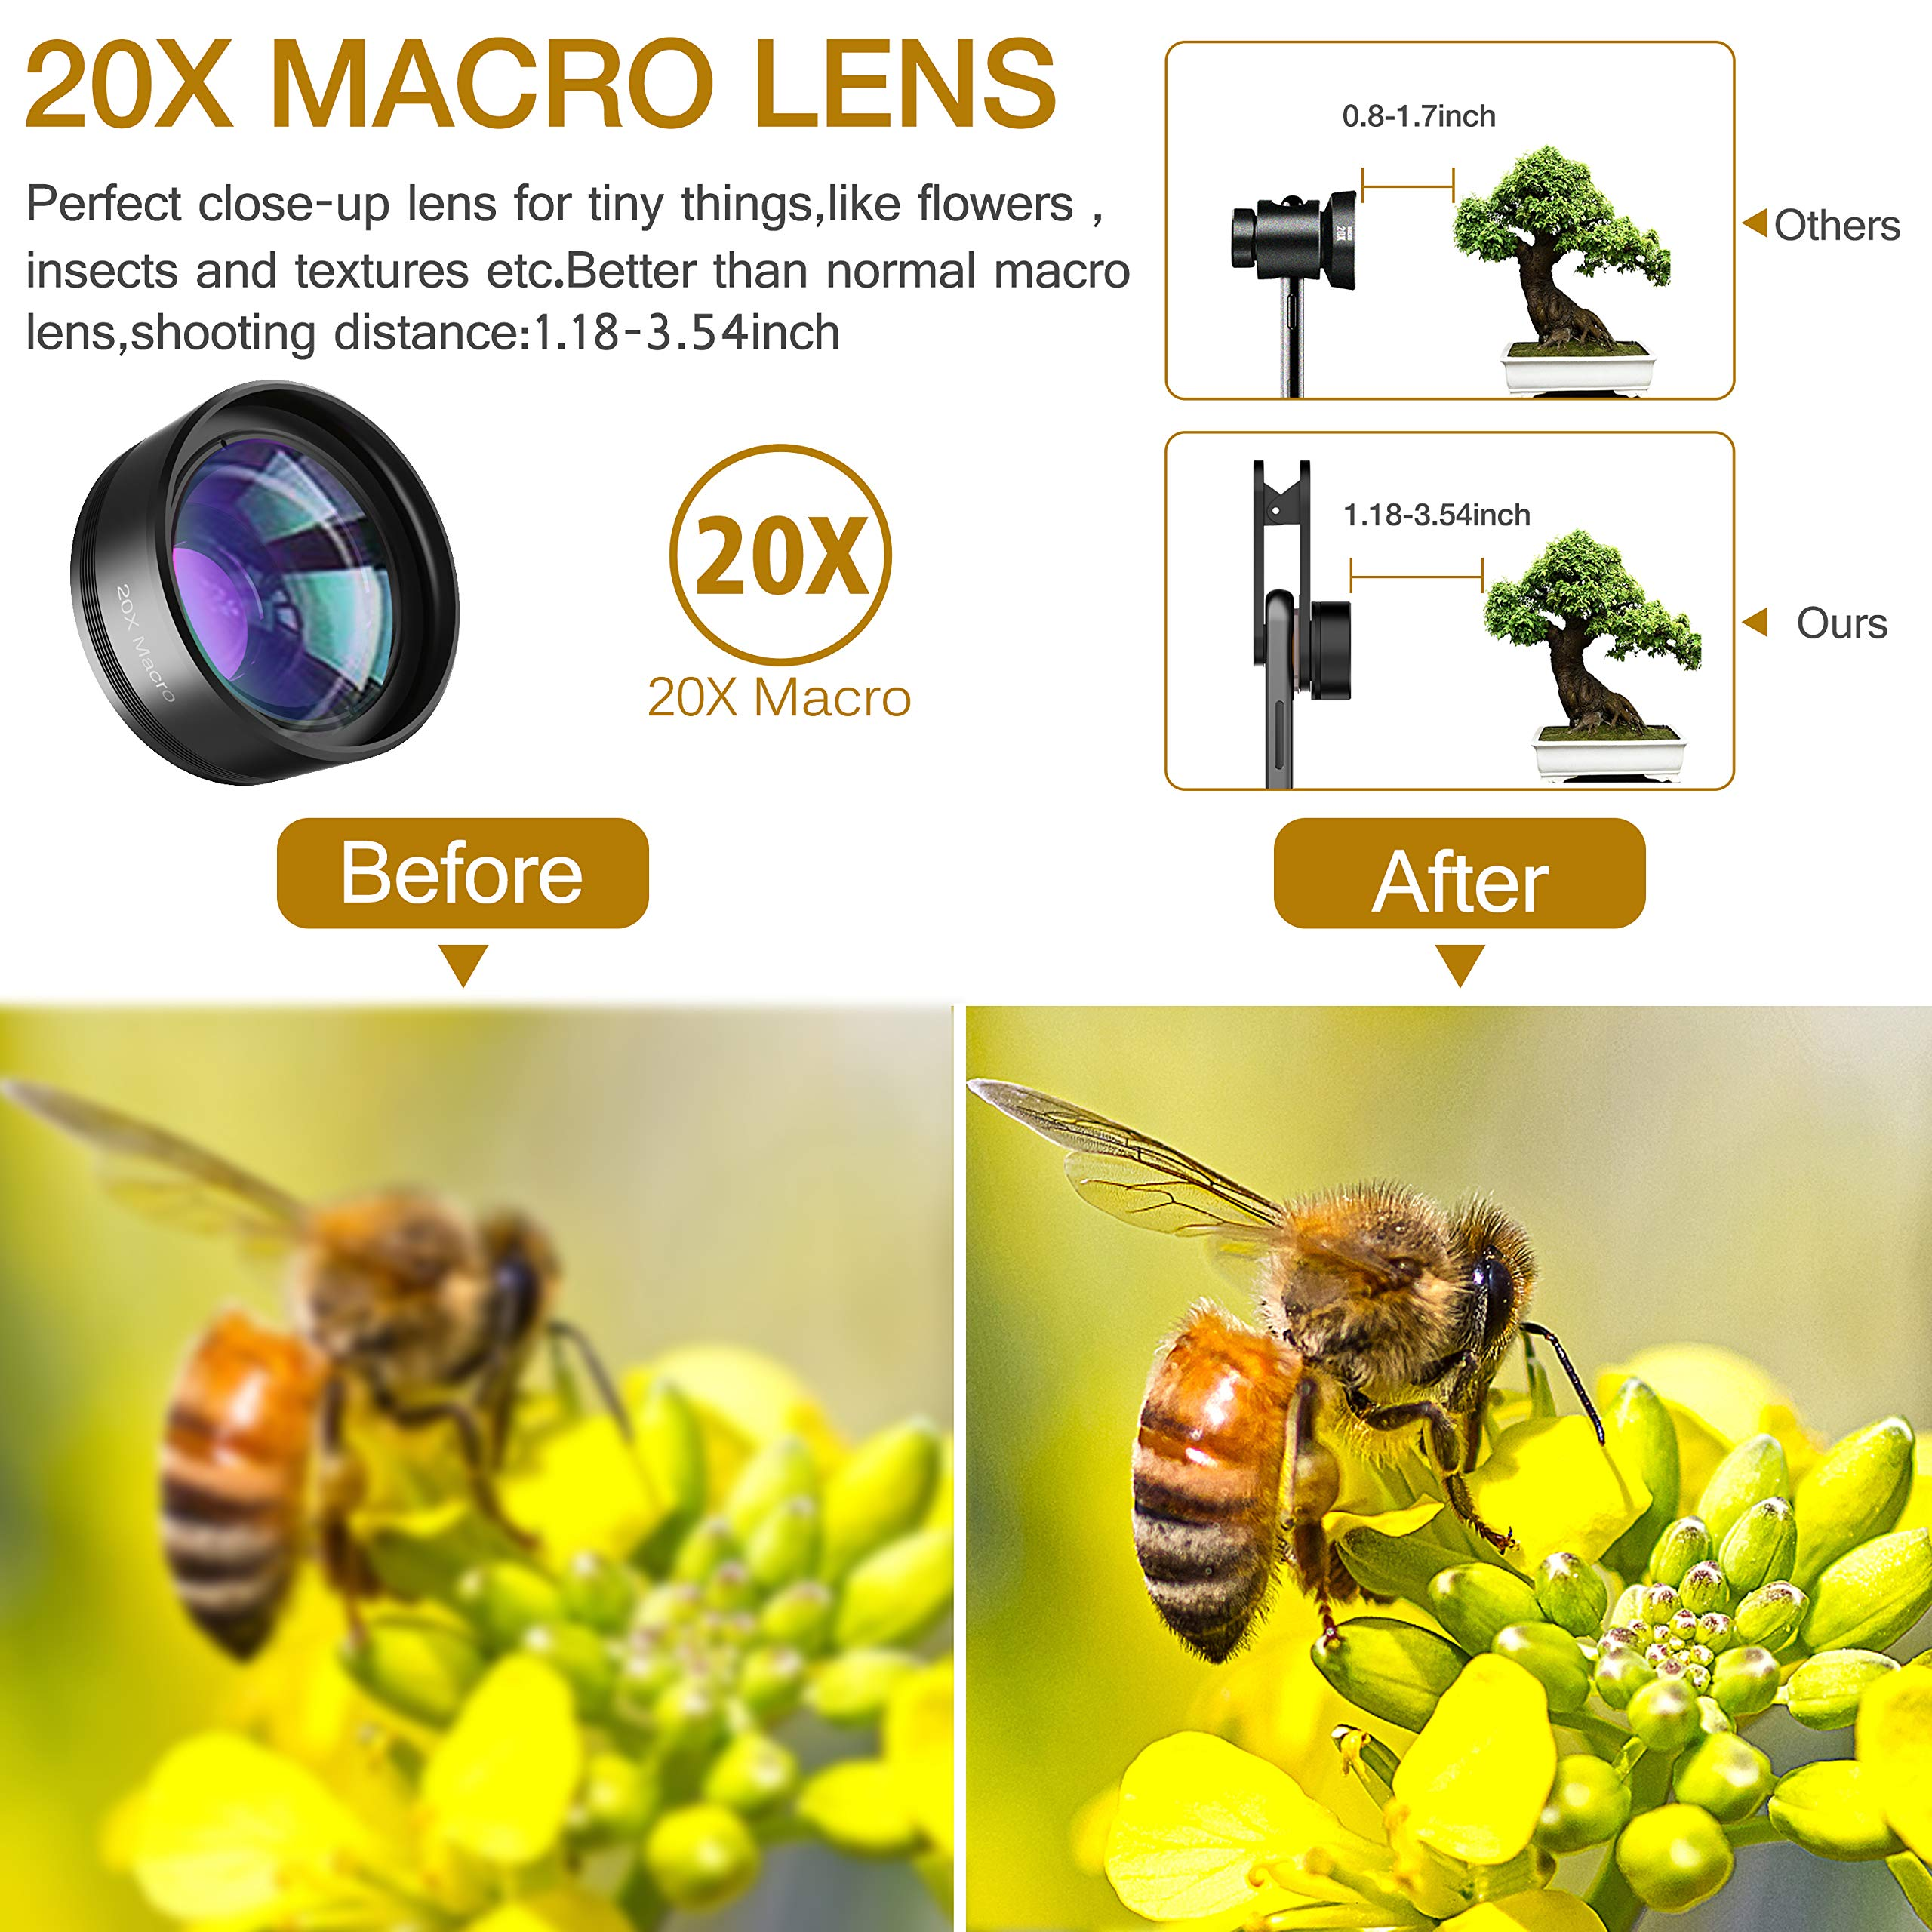 Phone Camera Lens,Upgraded 3 in 1 Phone Lens kit-198° Fisheye Lens + 20X Macro Lens + 120° Wide Angle Lens,Clip on Cell Phone Lens Kits Compatible with iPhone,iPad,Most Android Phones and Smartphones by LEKNES (Image #6)